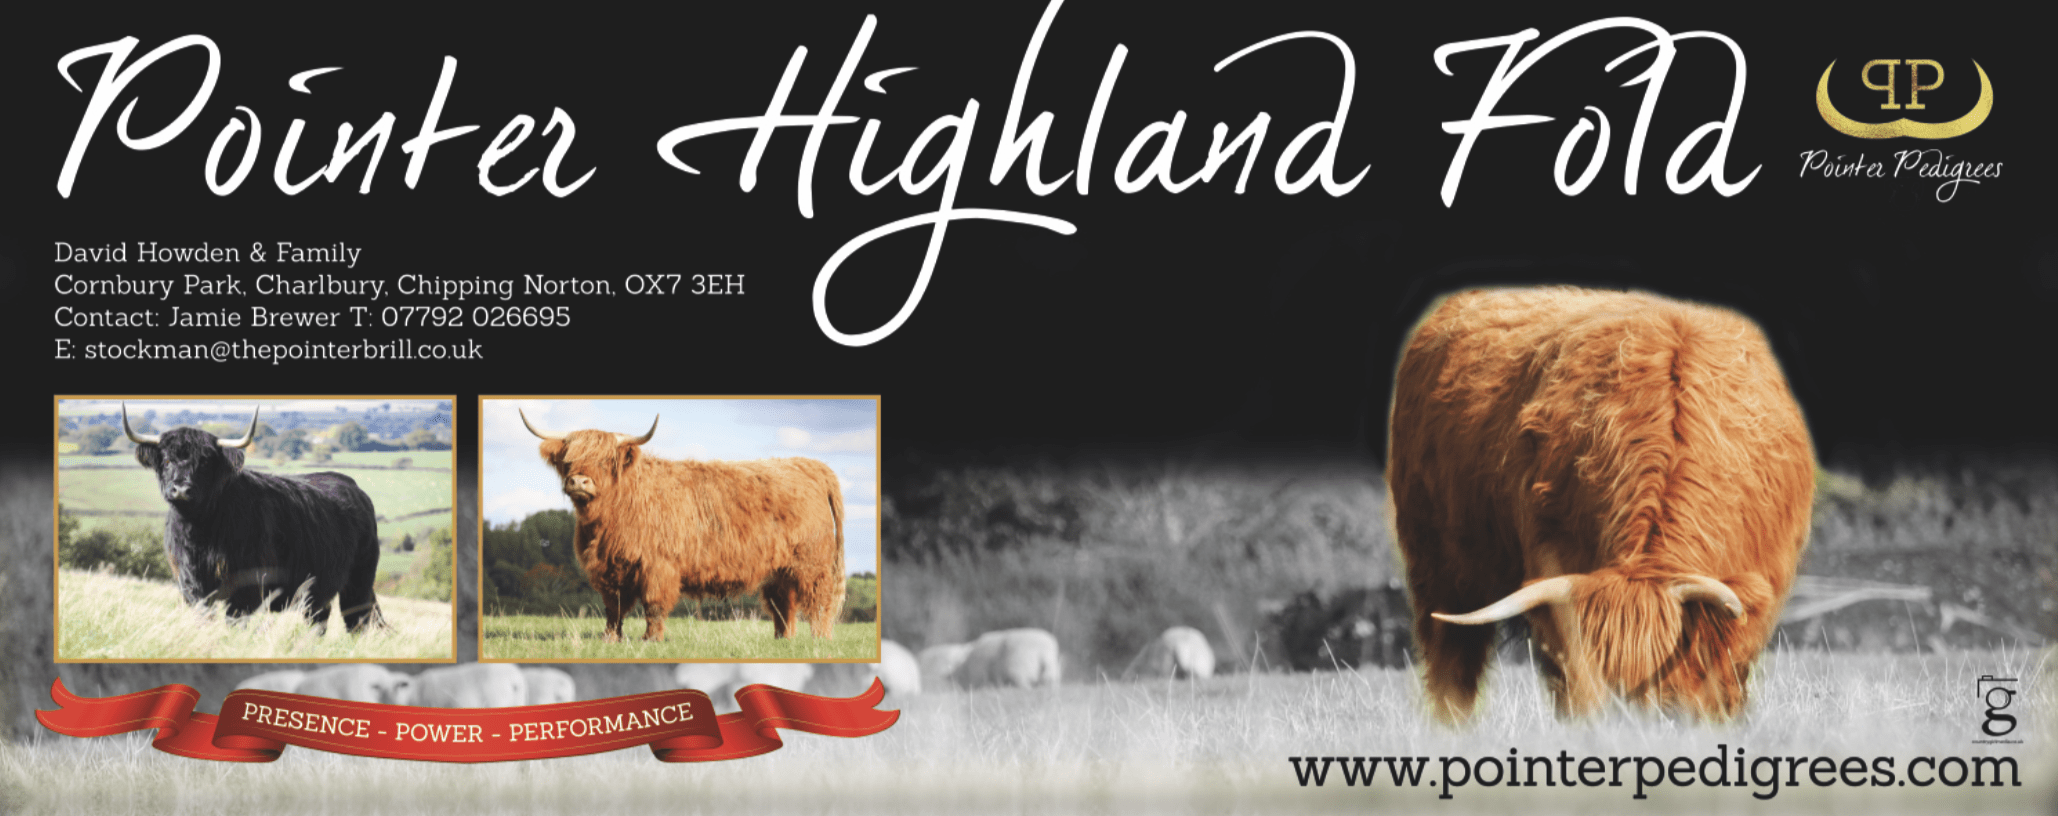 Photography and banner design for Pointer Highlands